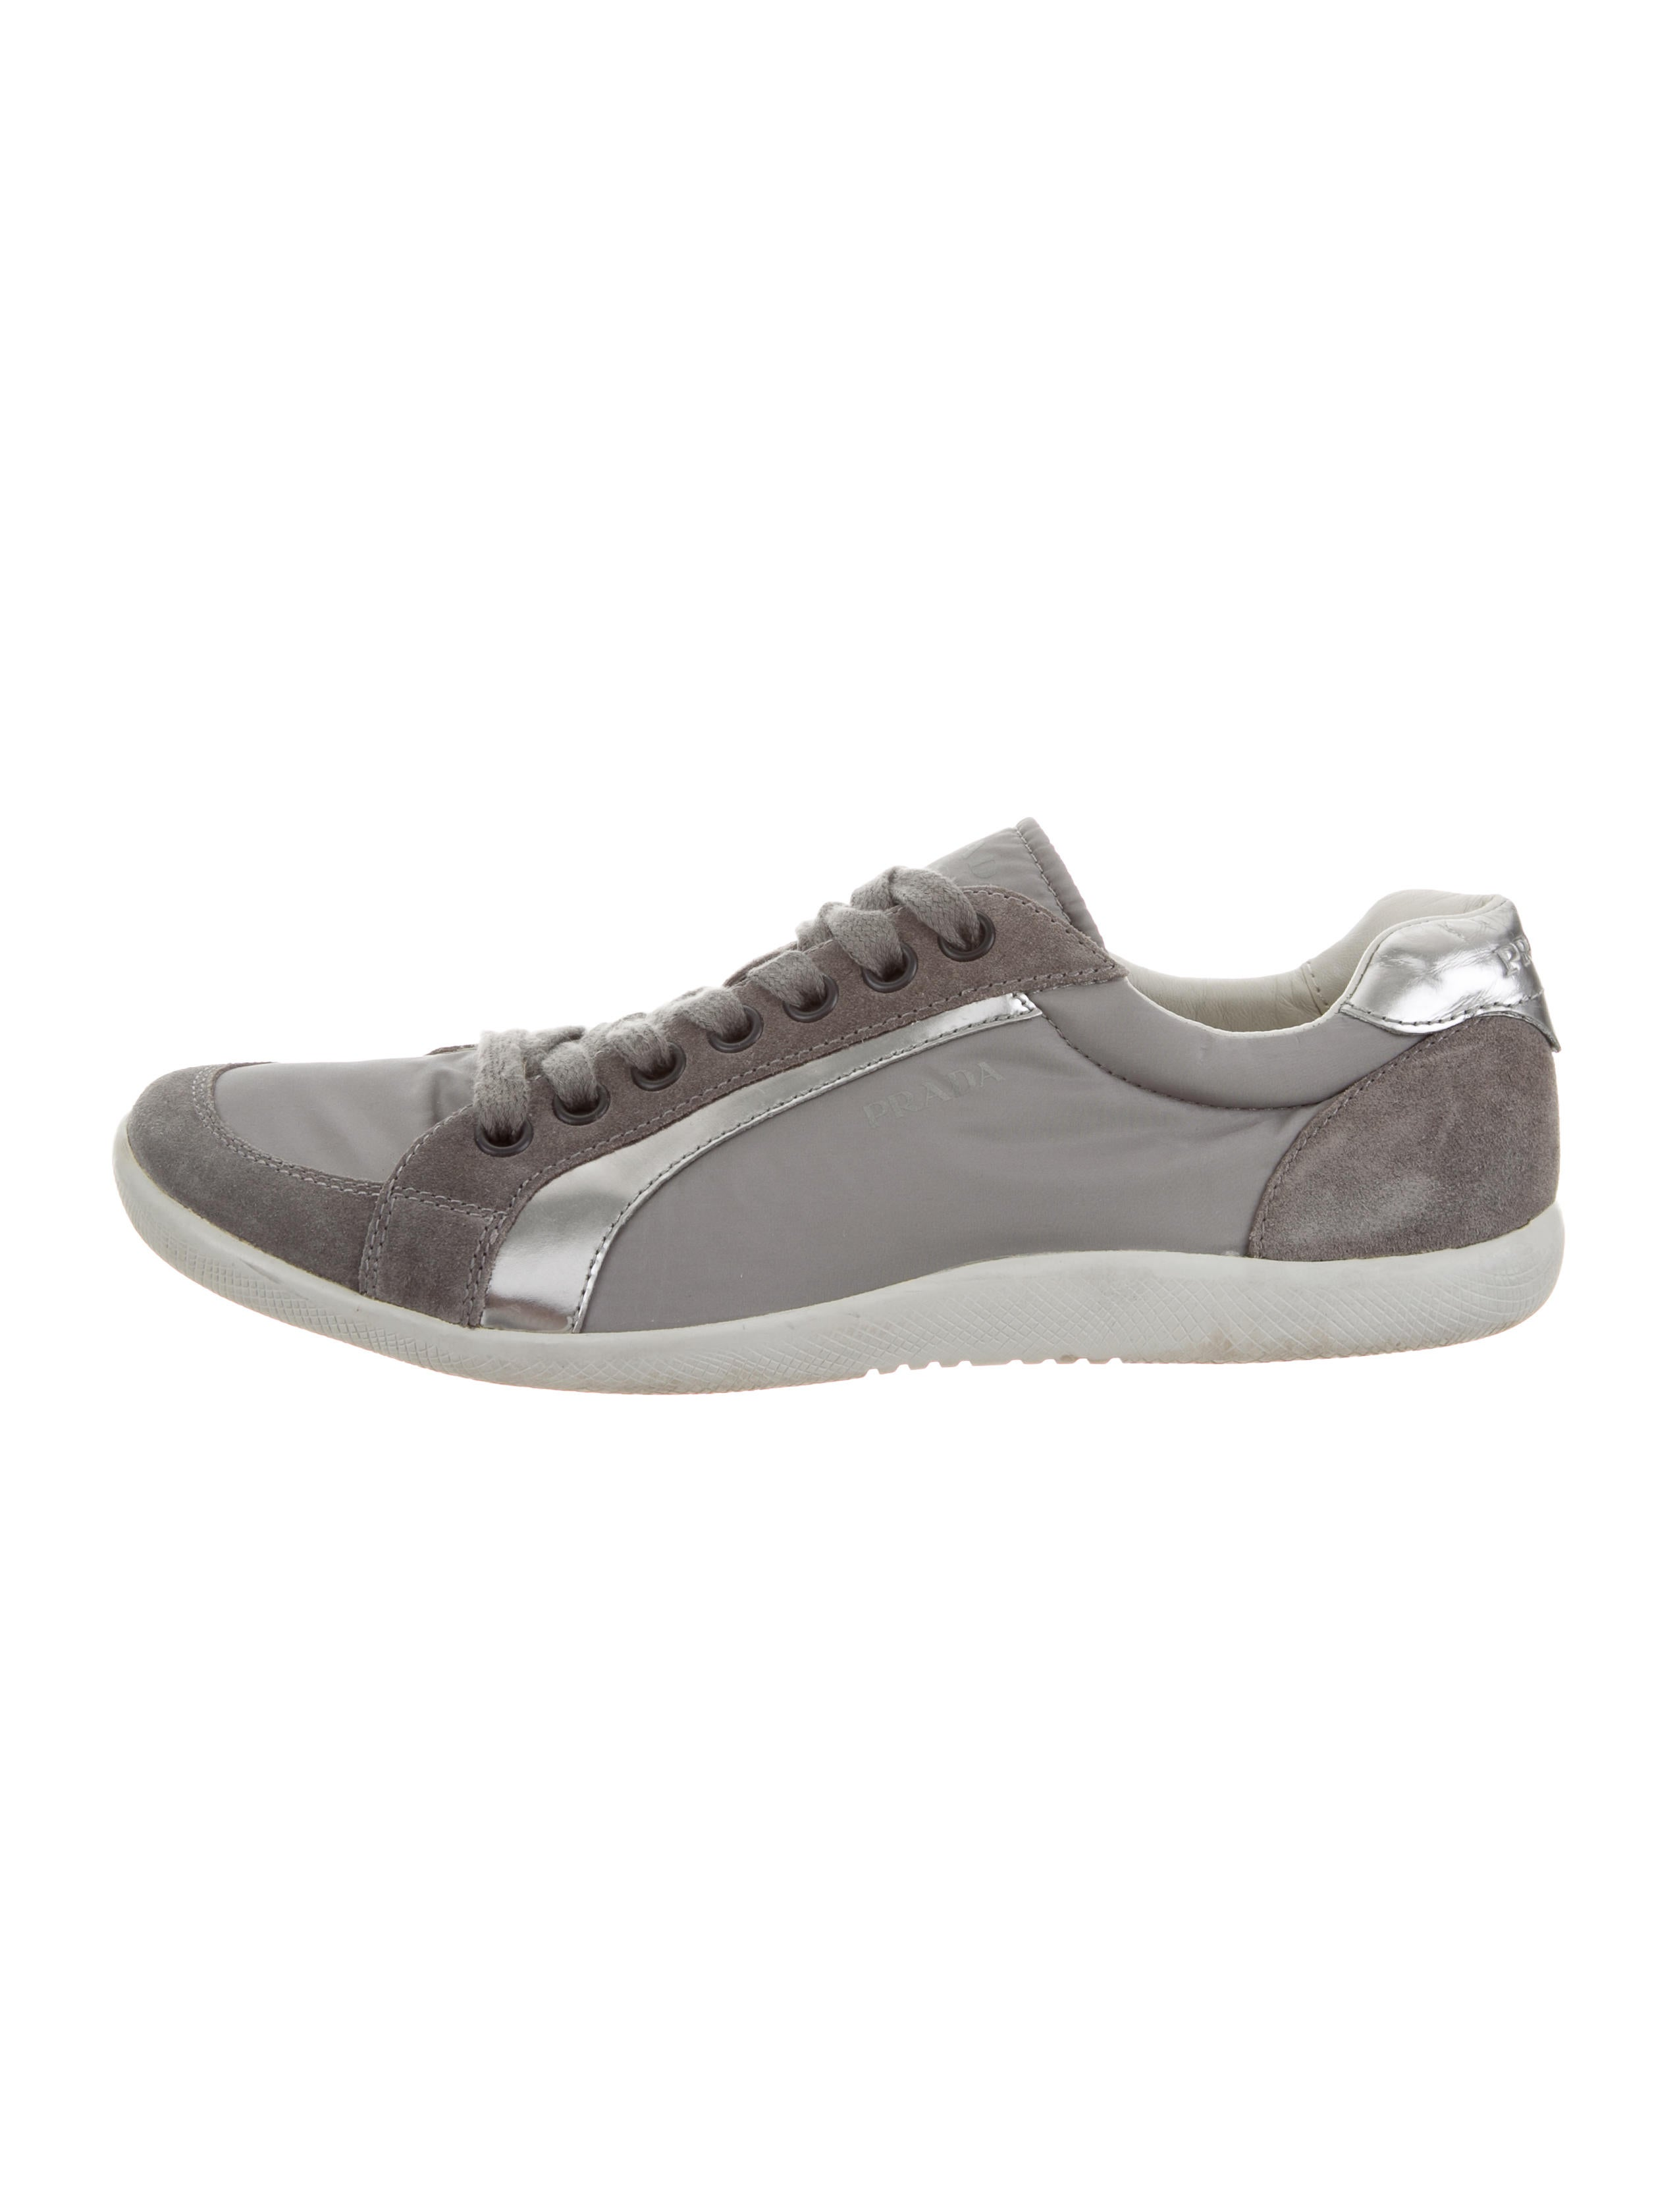 outlet best store to get reliable online Prada Sport Nylon Low-Top Sneakers cheap sale visa payment fY90aG7